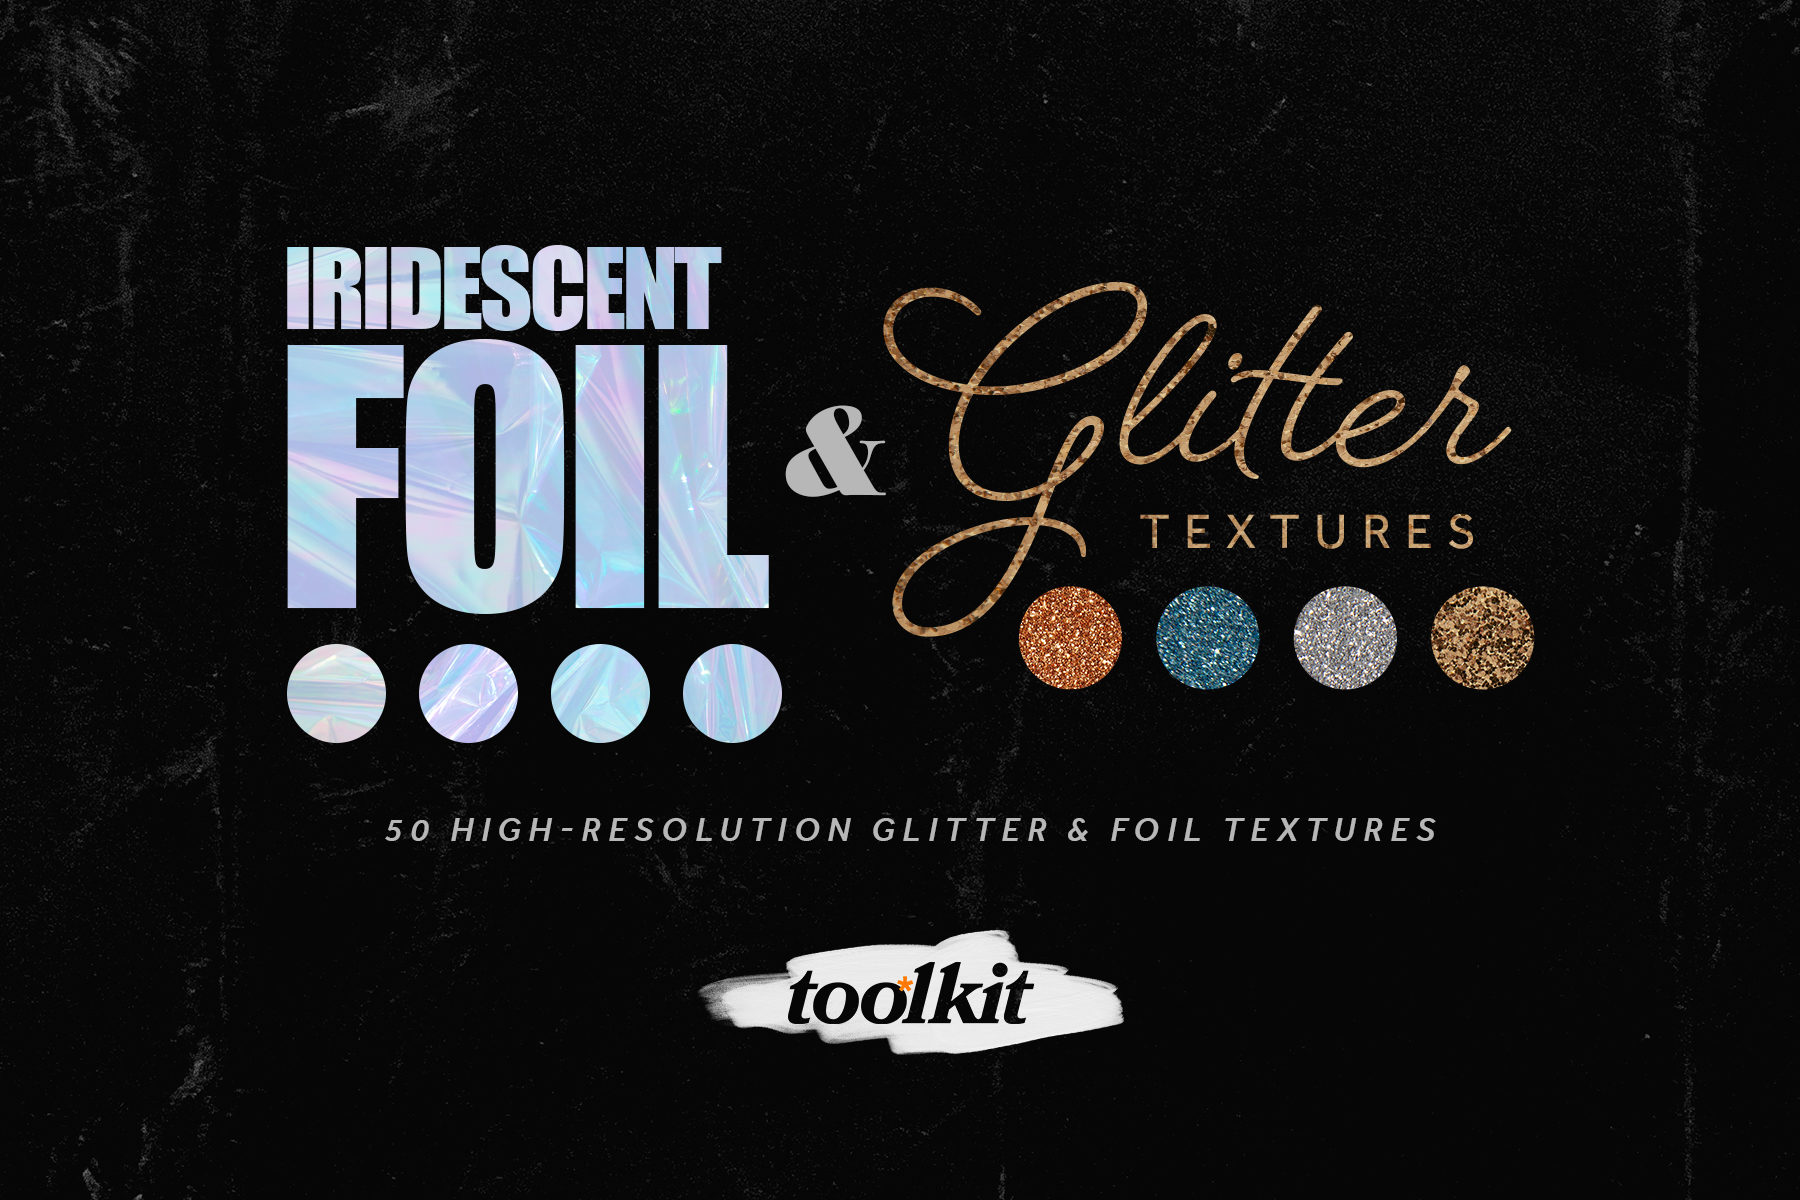 https://nusupply.co/wp-content/uploads/2019/11/Tooolkit_Glitter-And-Foil_Preview-1800x1200.jpg